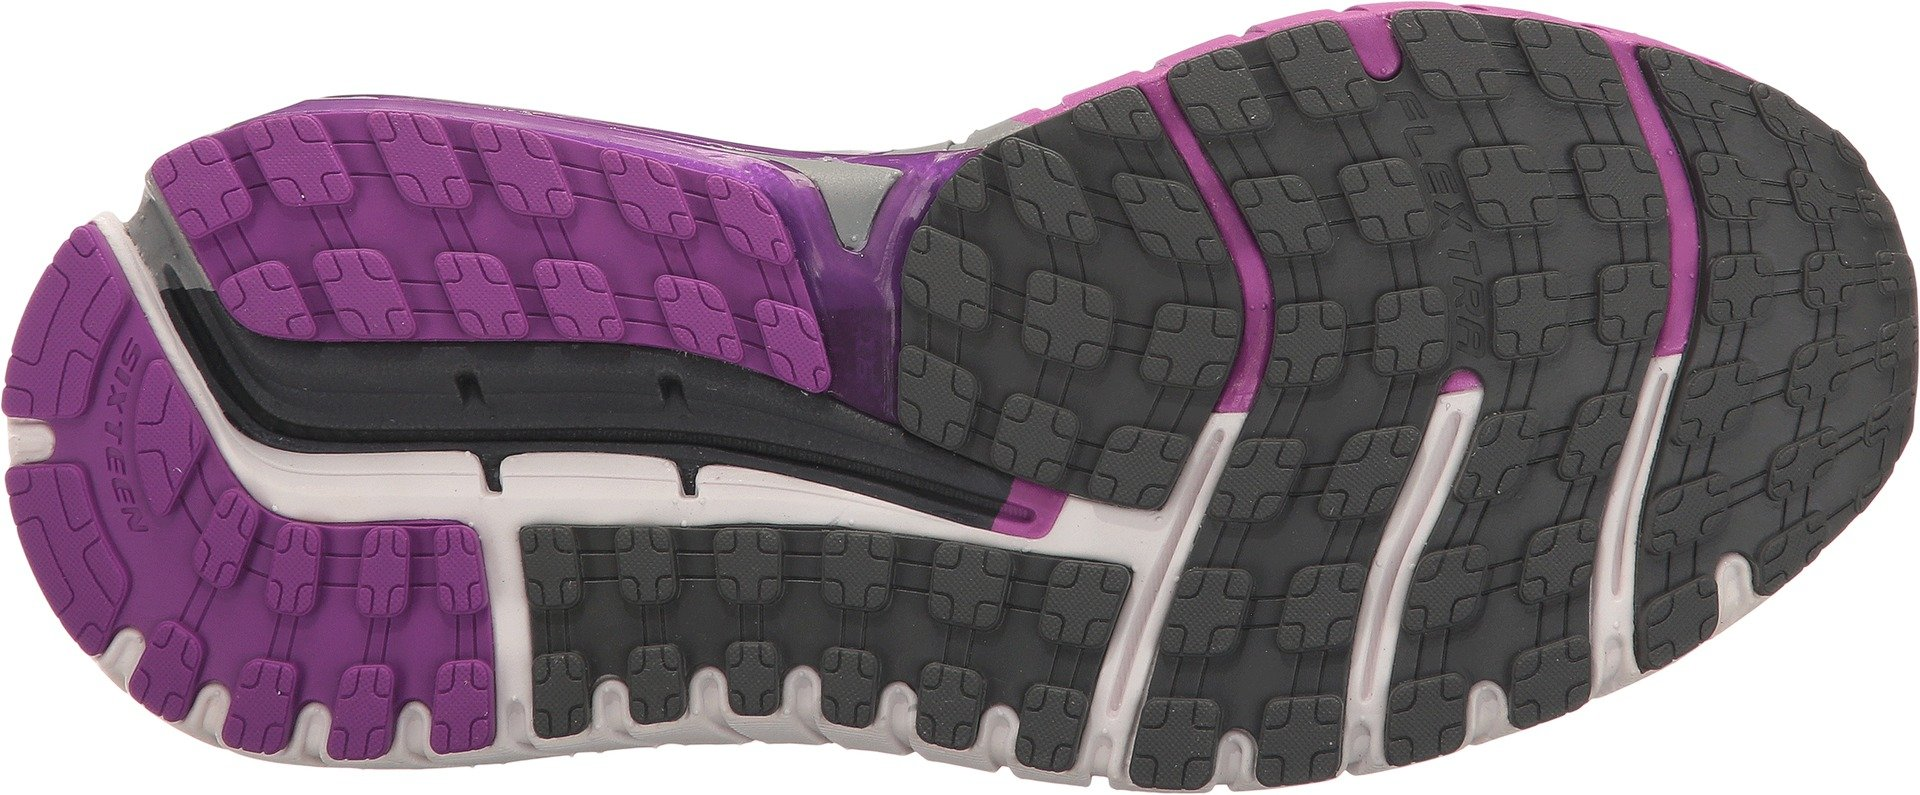 Brooks Women's Ariel '16 Anthracite/Purple Cactus Flower/Primer Grey 7 B US by Brooks (Image #3)